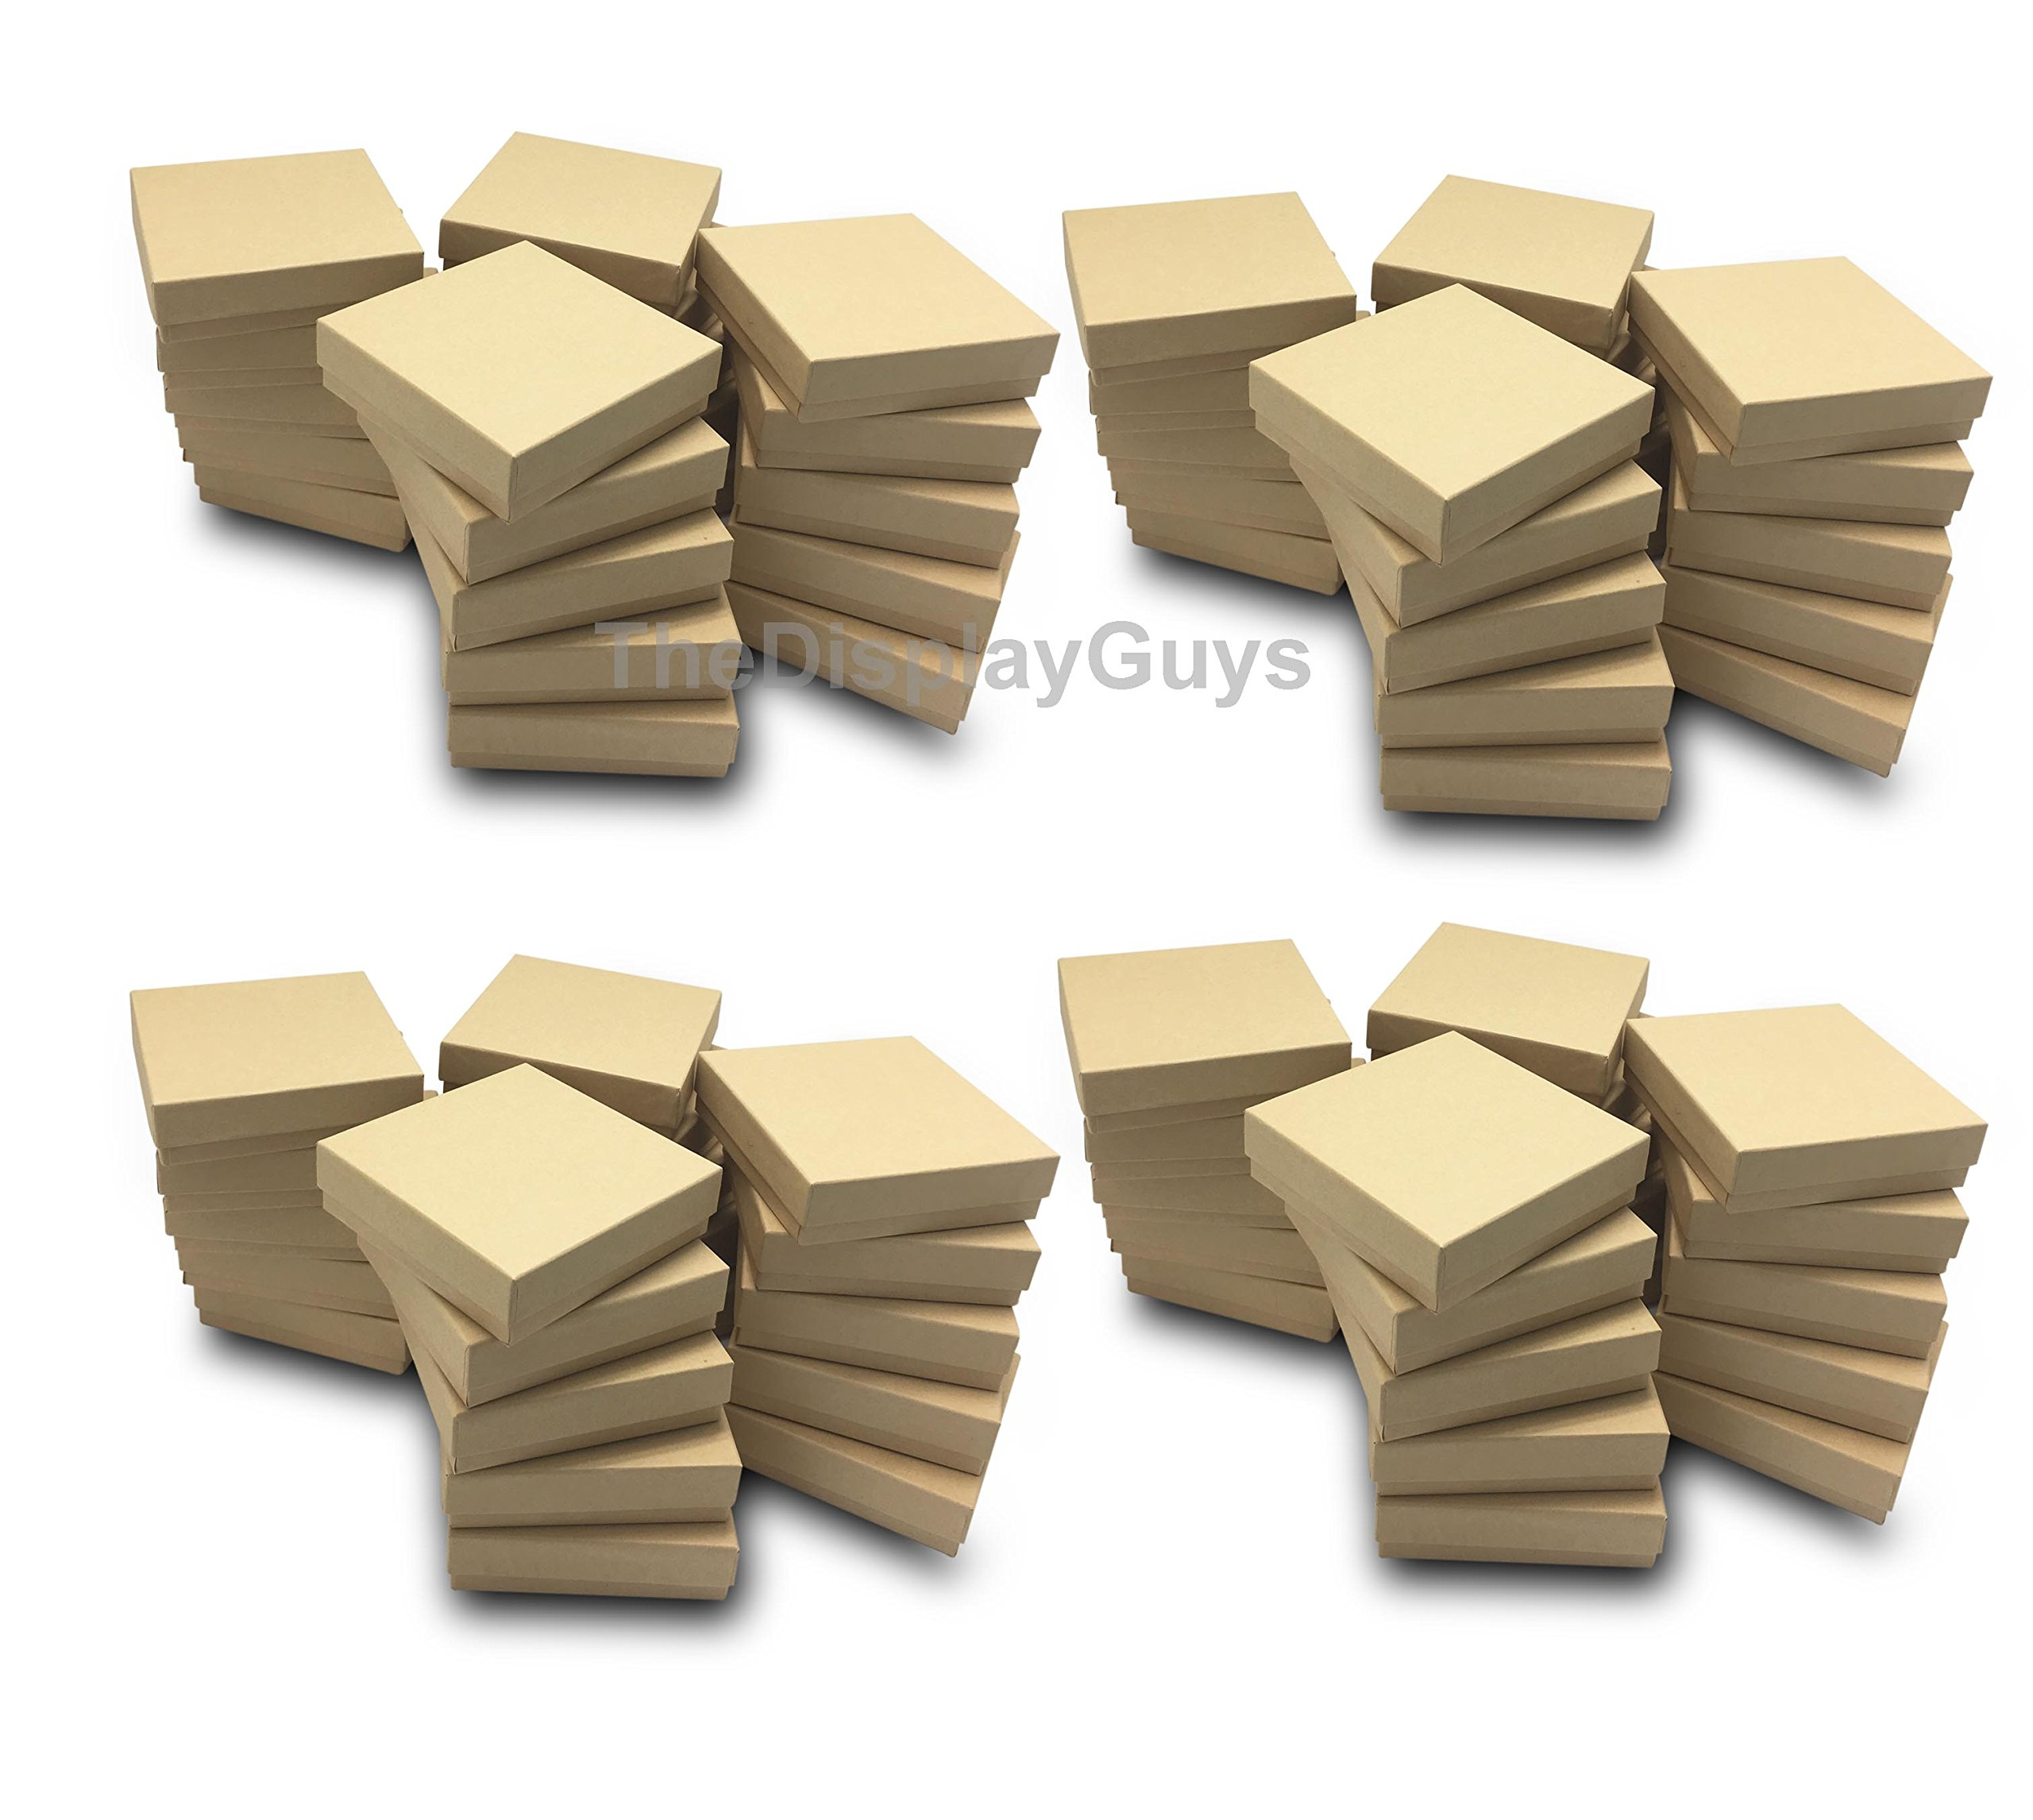 The Display Guys~ Pack of 100 Cotton Filled Cardboard Paper Kraft Jewelry Box Gift Case - Kraft Brown (3 1/2x3 1/2x1 inches #33) by The Display Guys